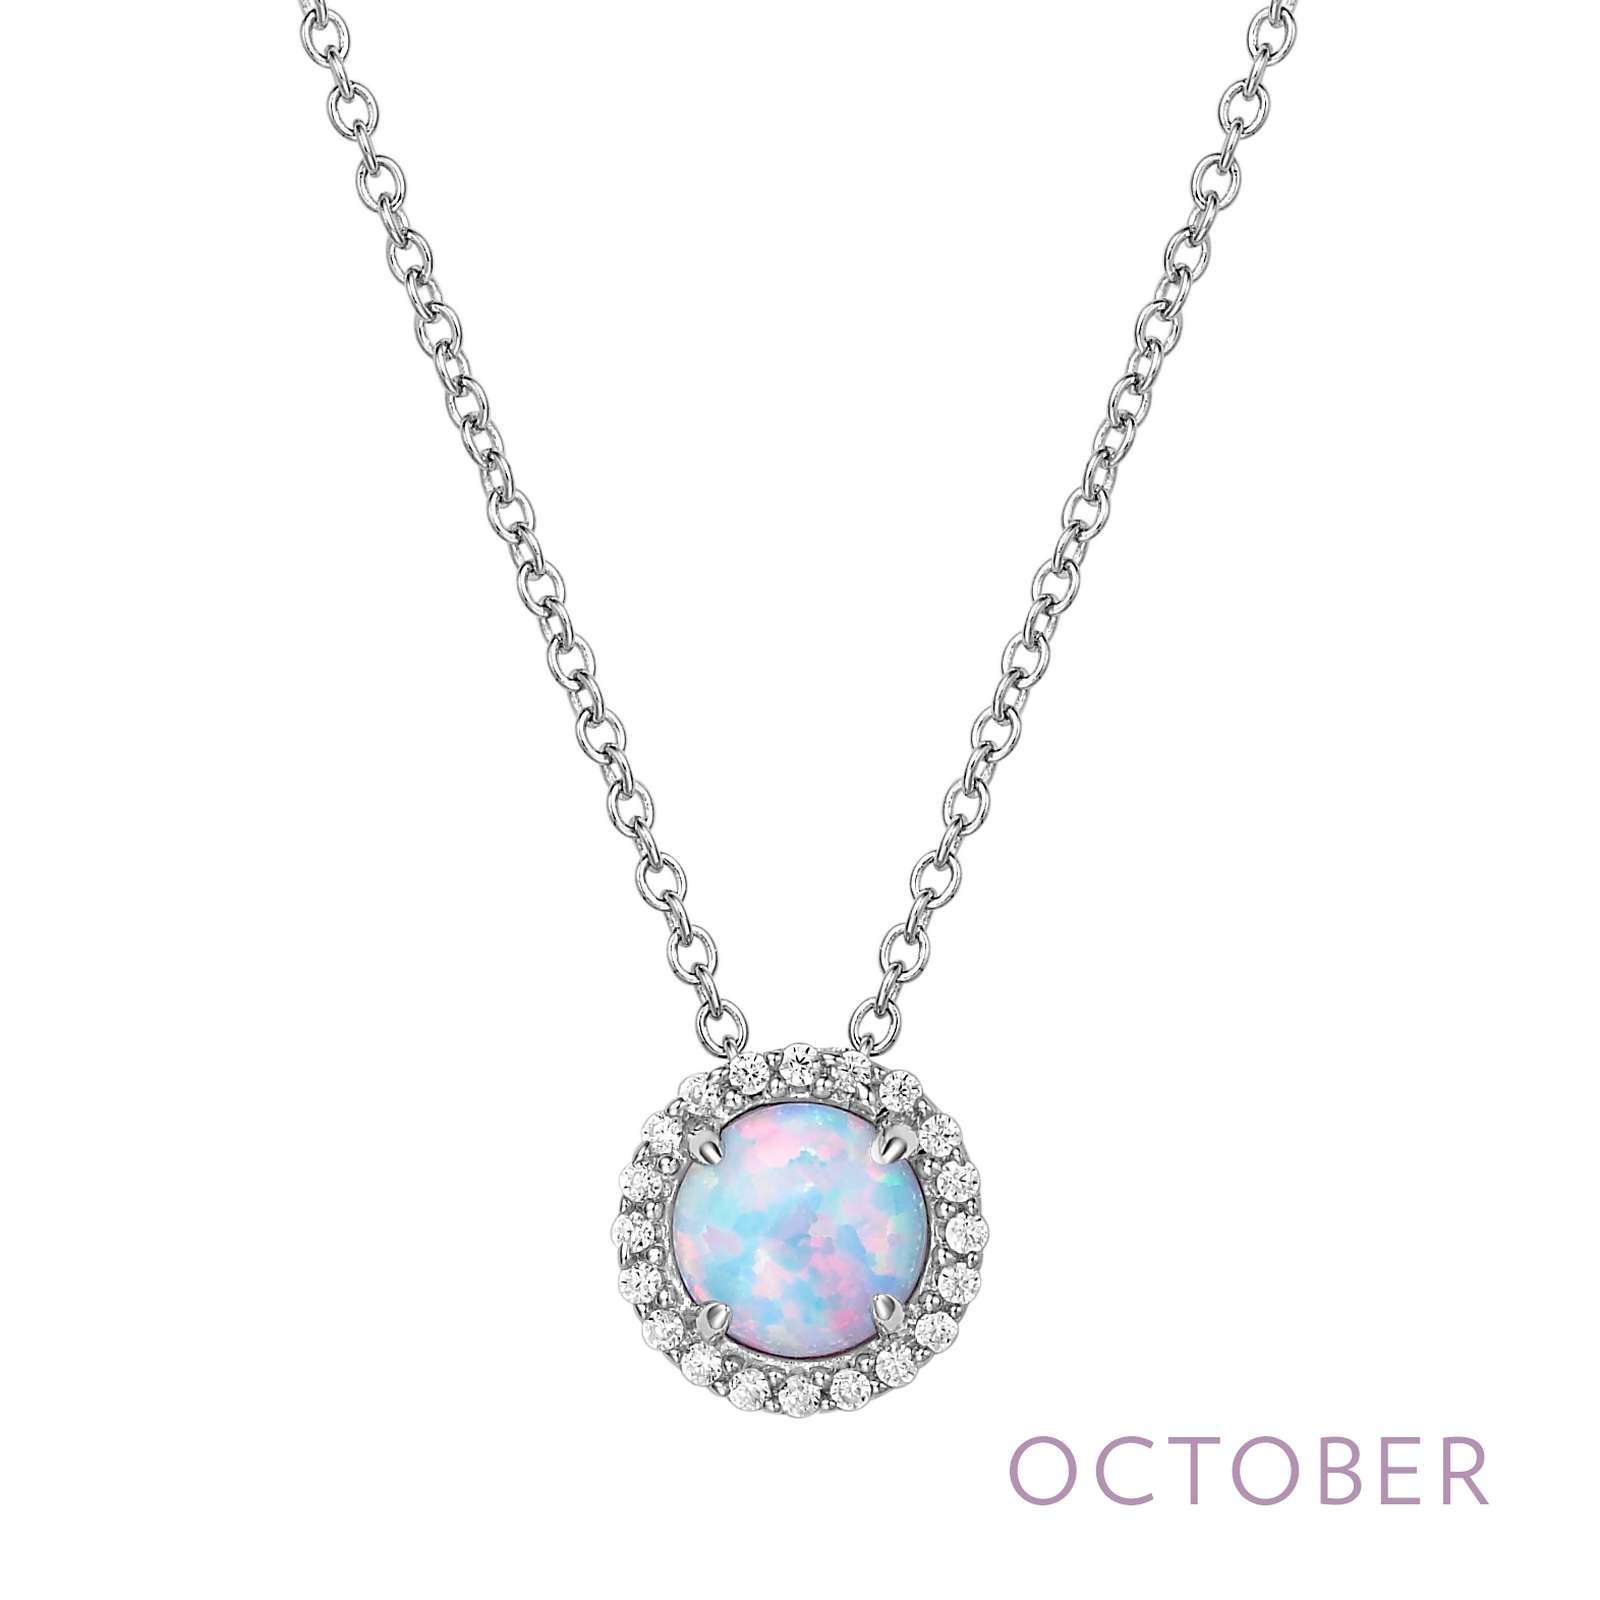 October - Opal.  Adorn yourself with Lafonn's birthstone jewelry. The necklace is set with a simulated opal surrounded by Lafonn's signature Lassaire simulated diamonds in sterling silver bonded with platinum.